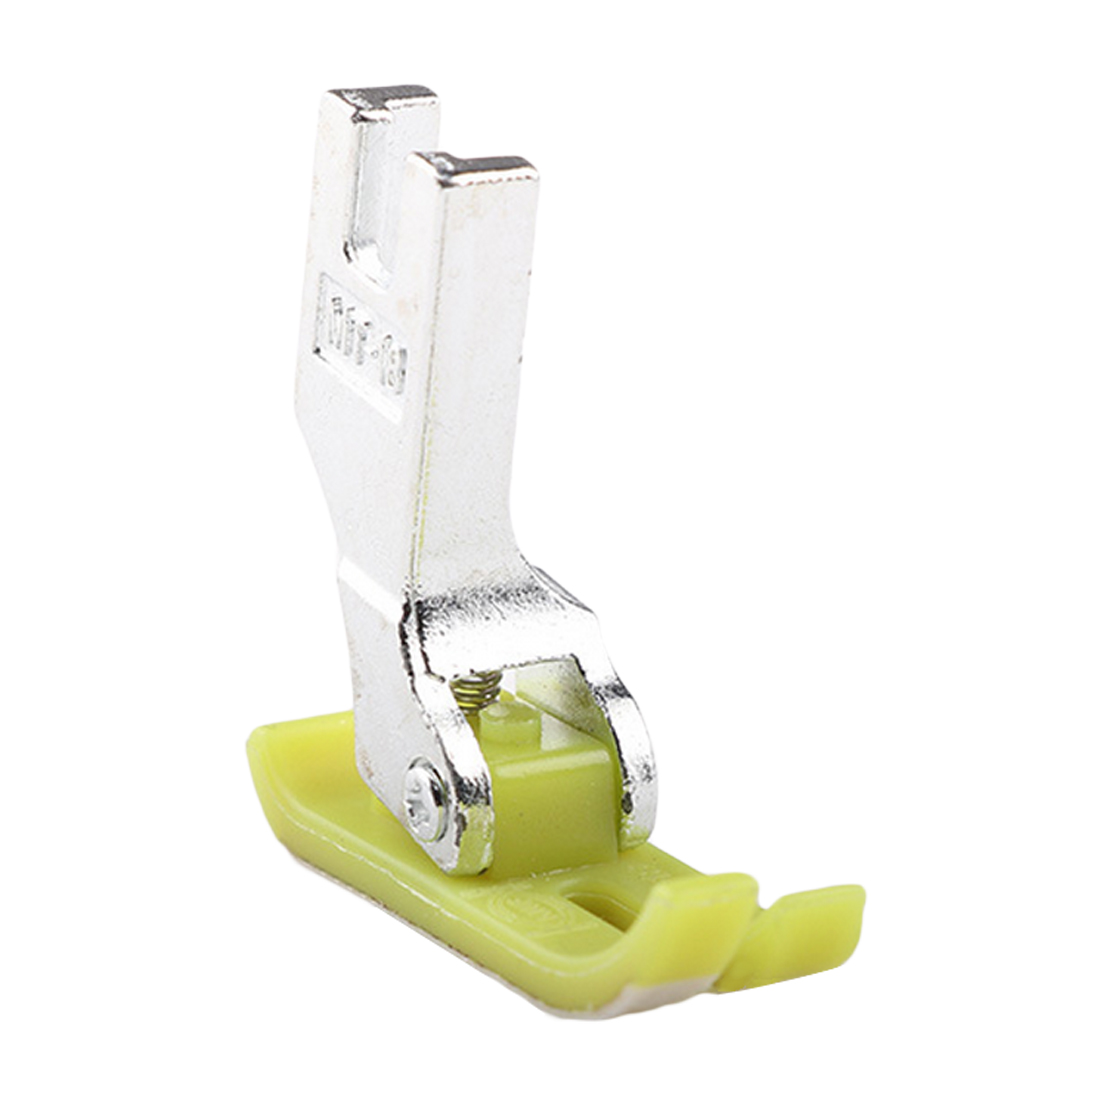 Presser Foot High Shank Household sewing machine Quilting Walking Guide Leather Pesser Foot Tools